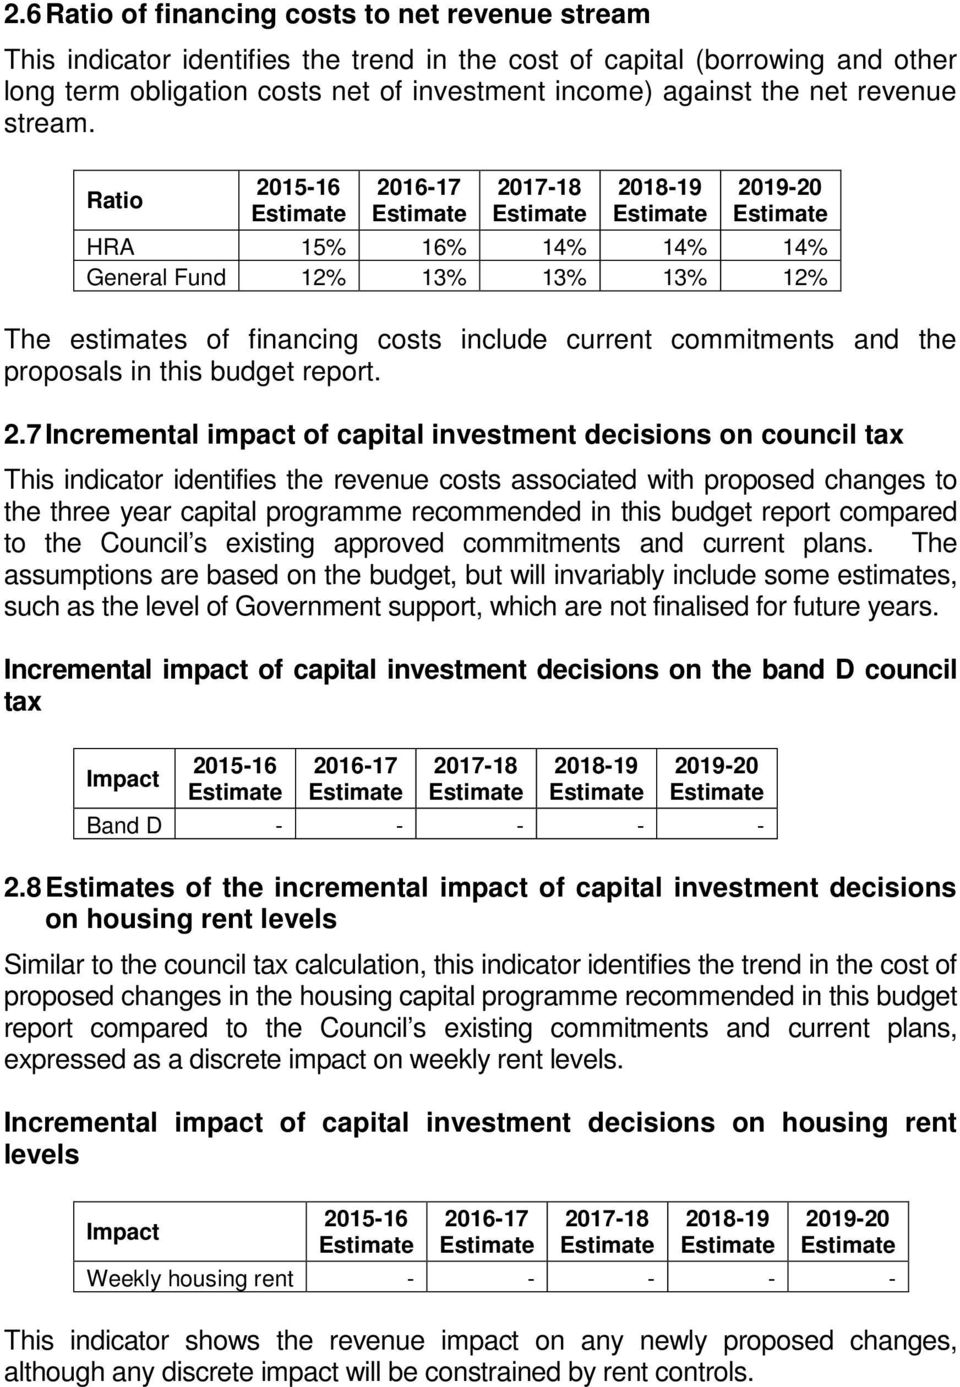 7 Incremental impact of capital investment decisions on council tax This indicator identifies the revenue costs associated with proposed changes to the three year capital programme recommended in